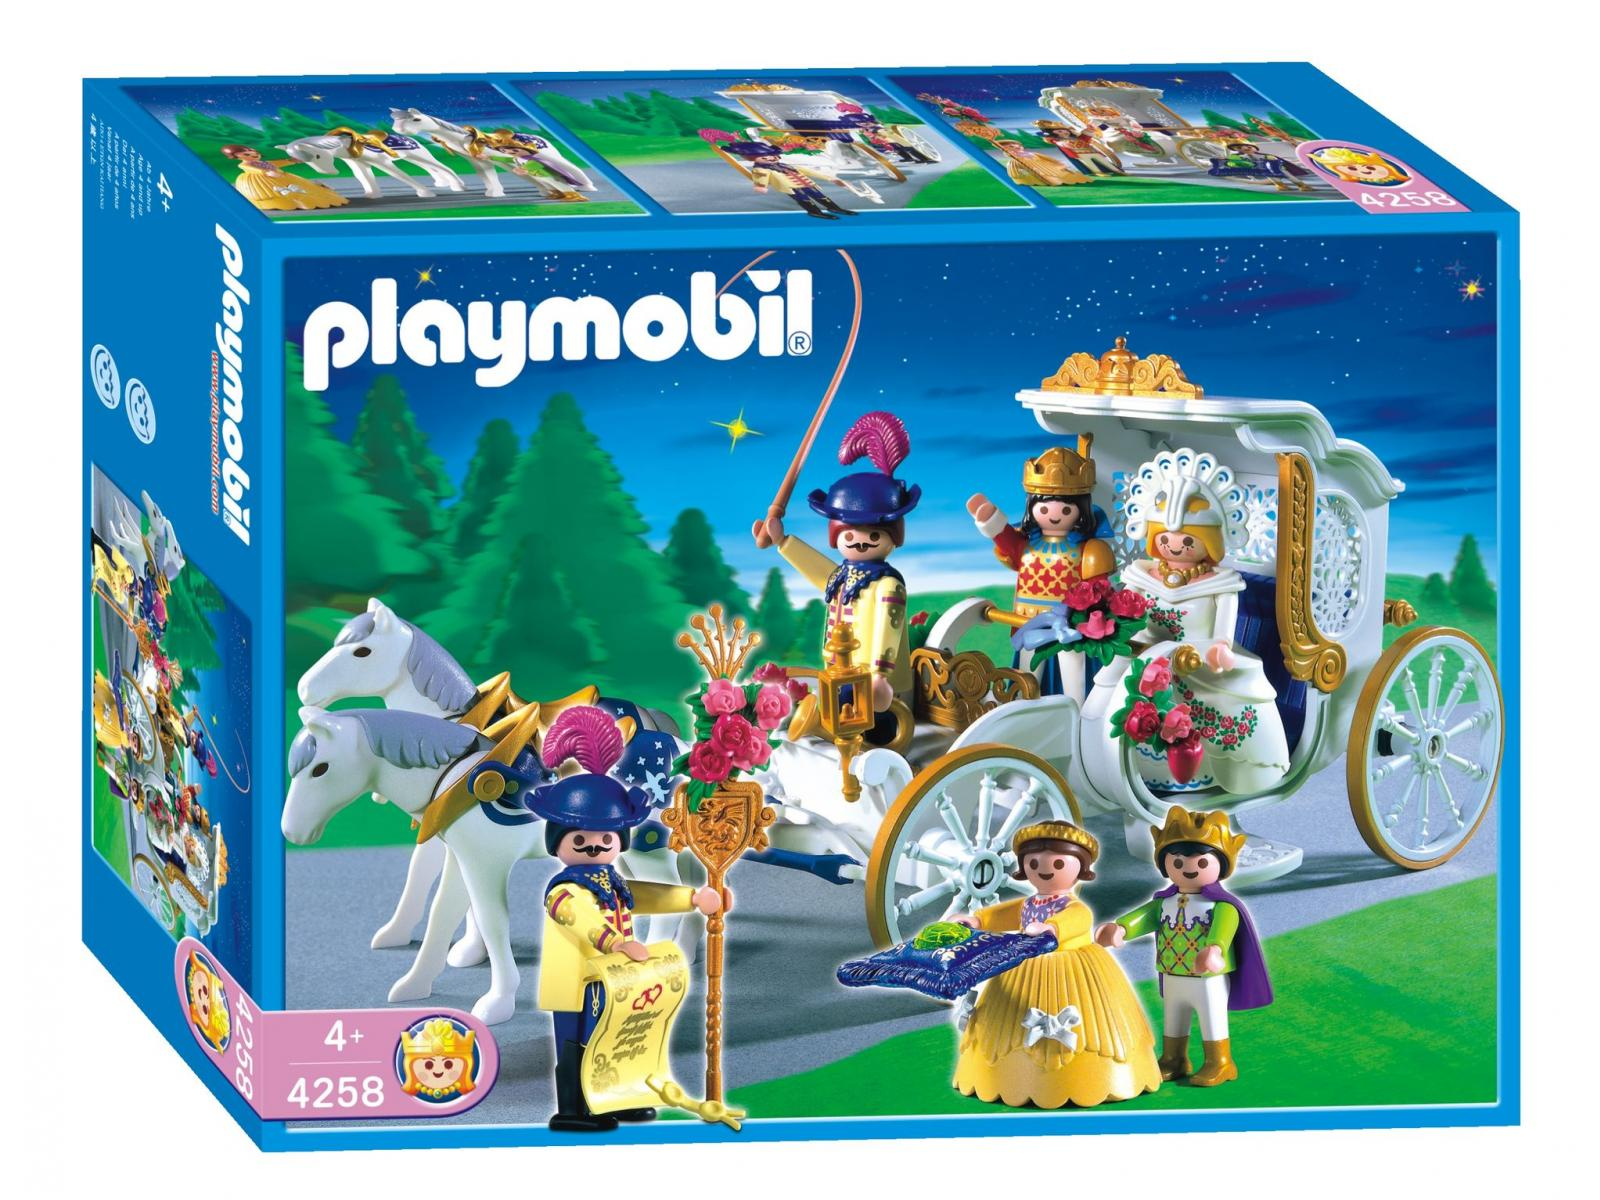 Chambre princesse playmobil mobilier d coration for Chambre princesse playmobil